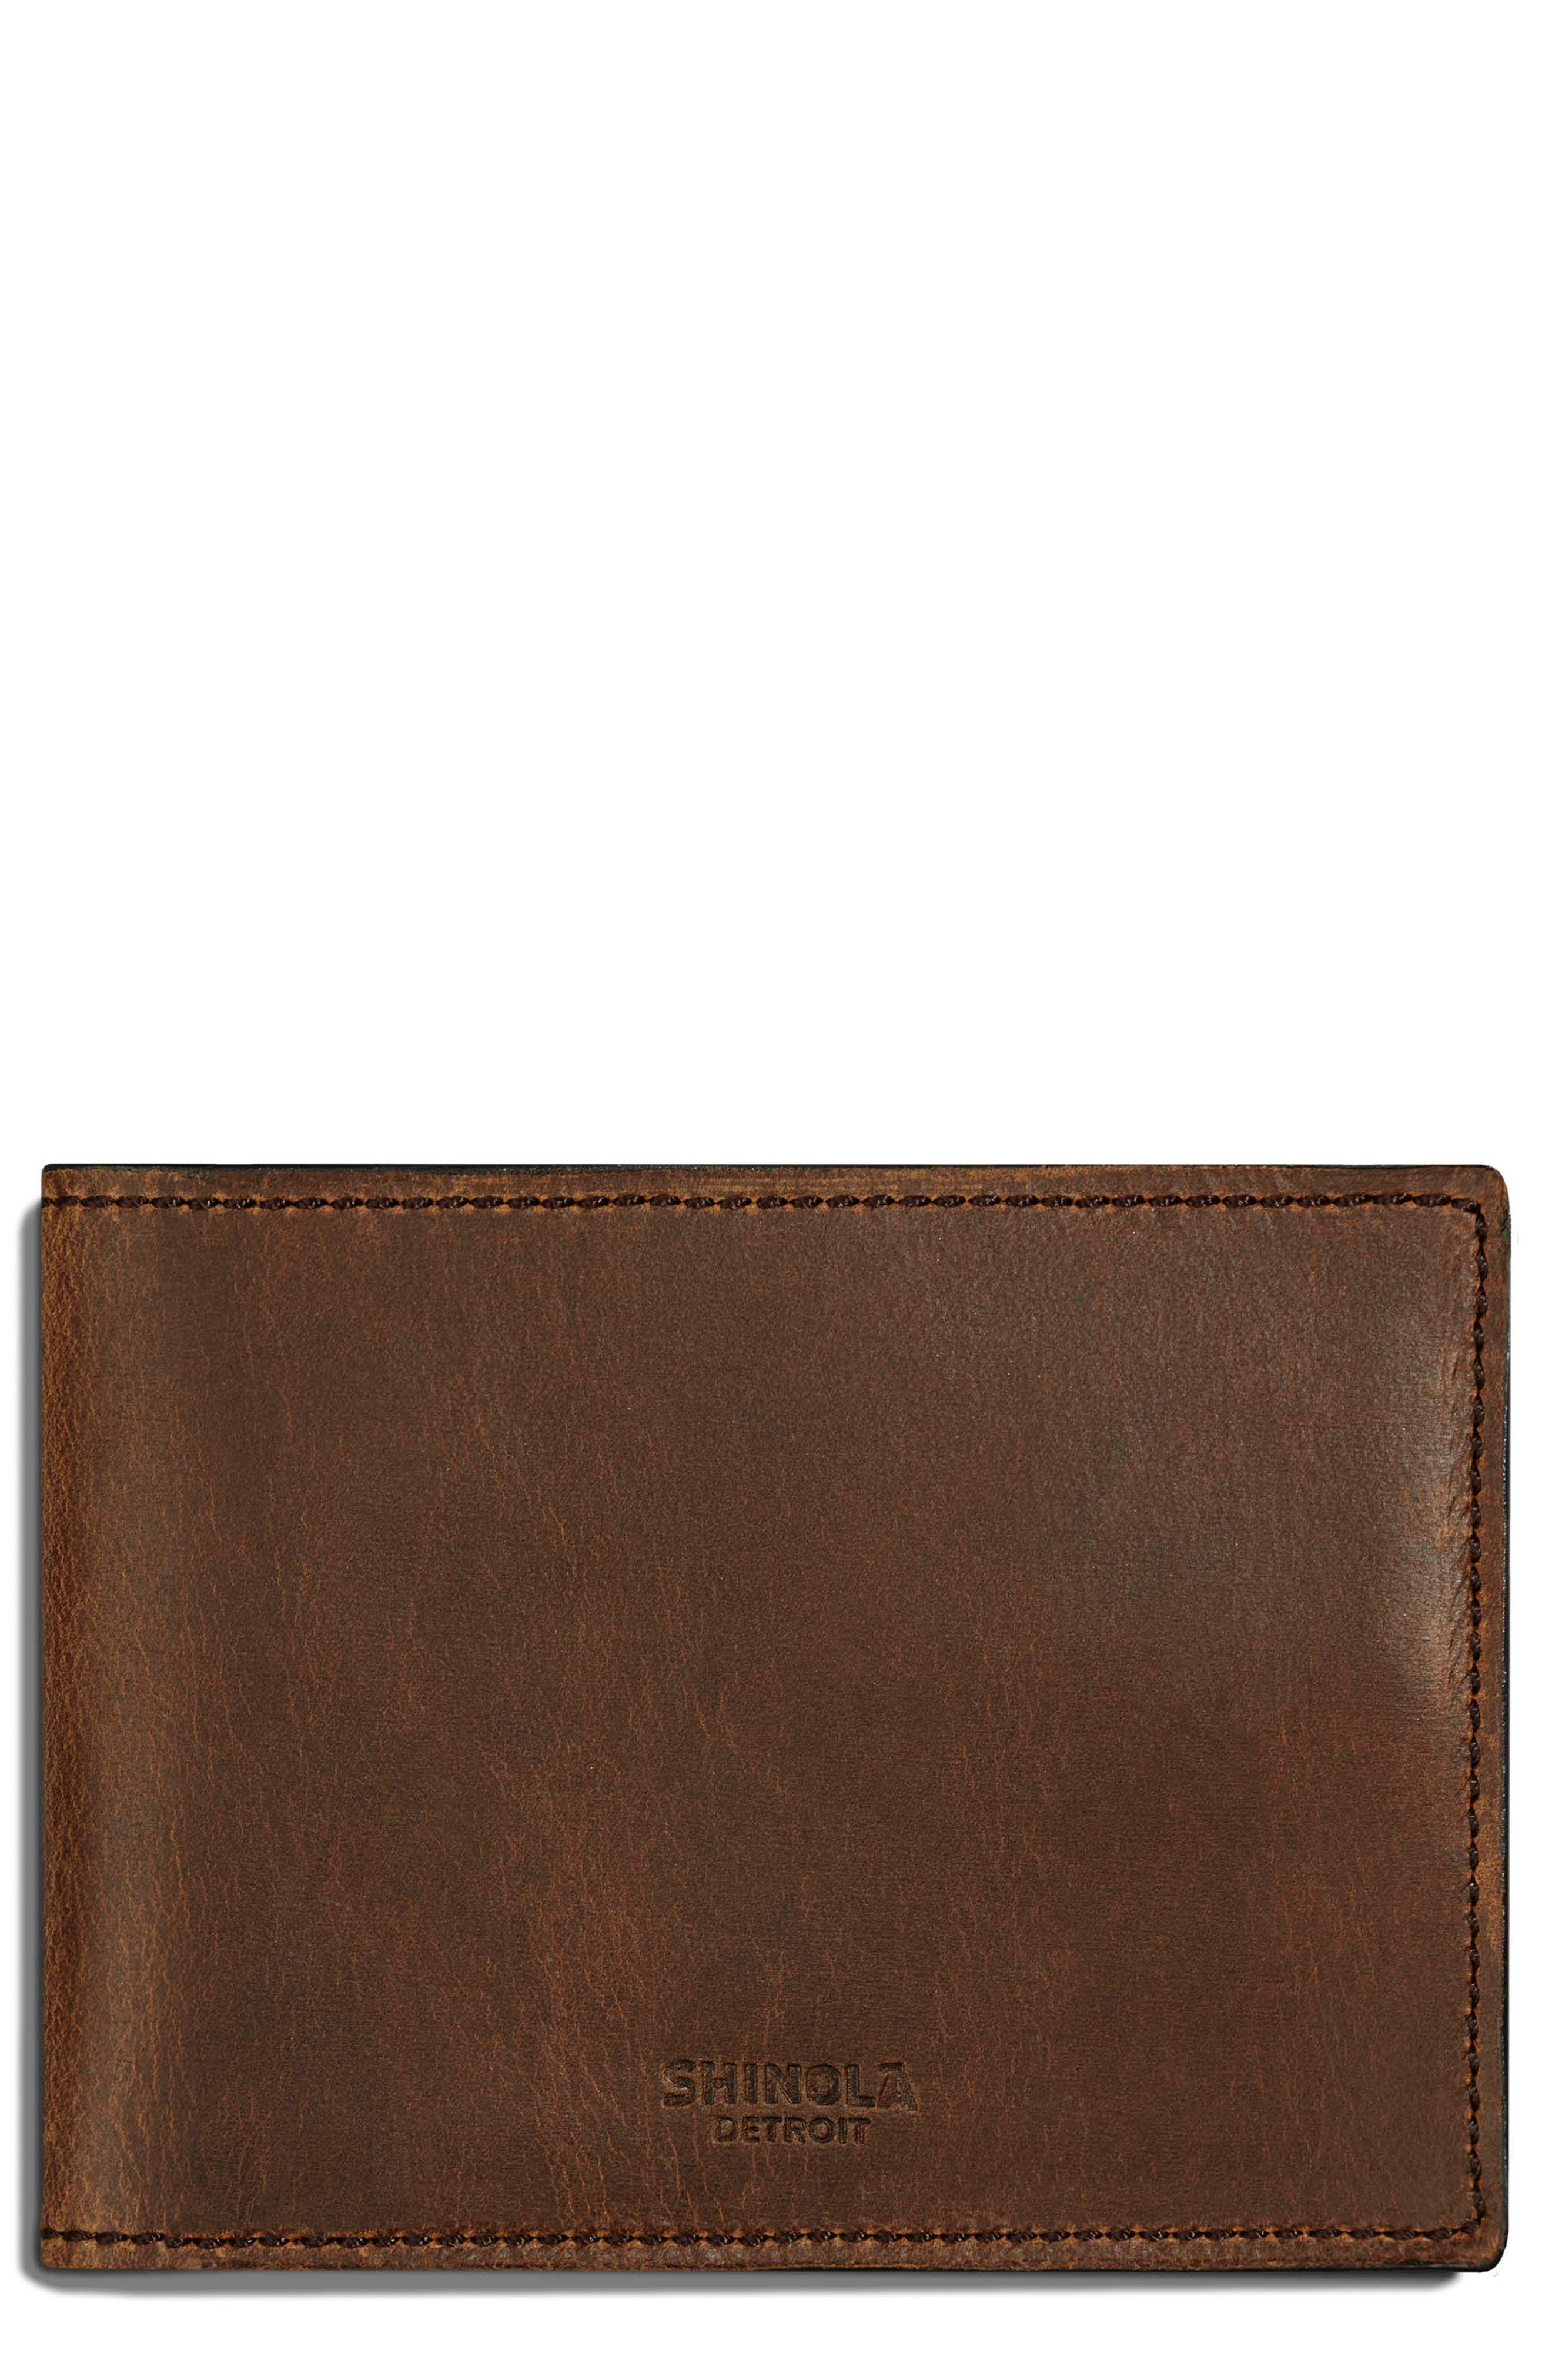 SHINOLA Leather Wallet